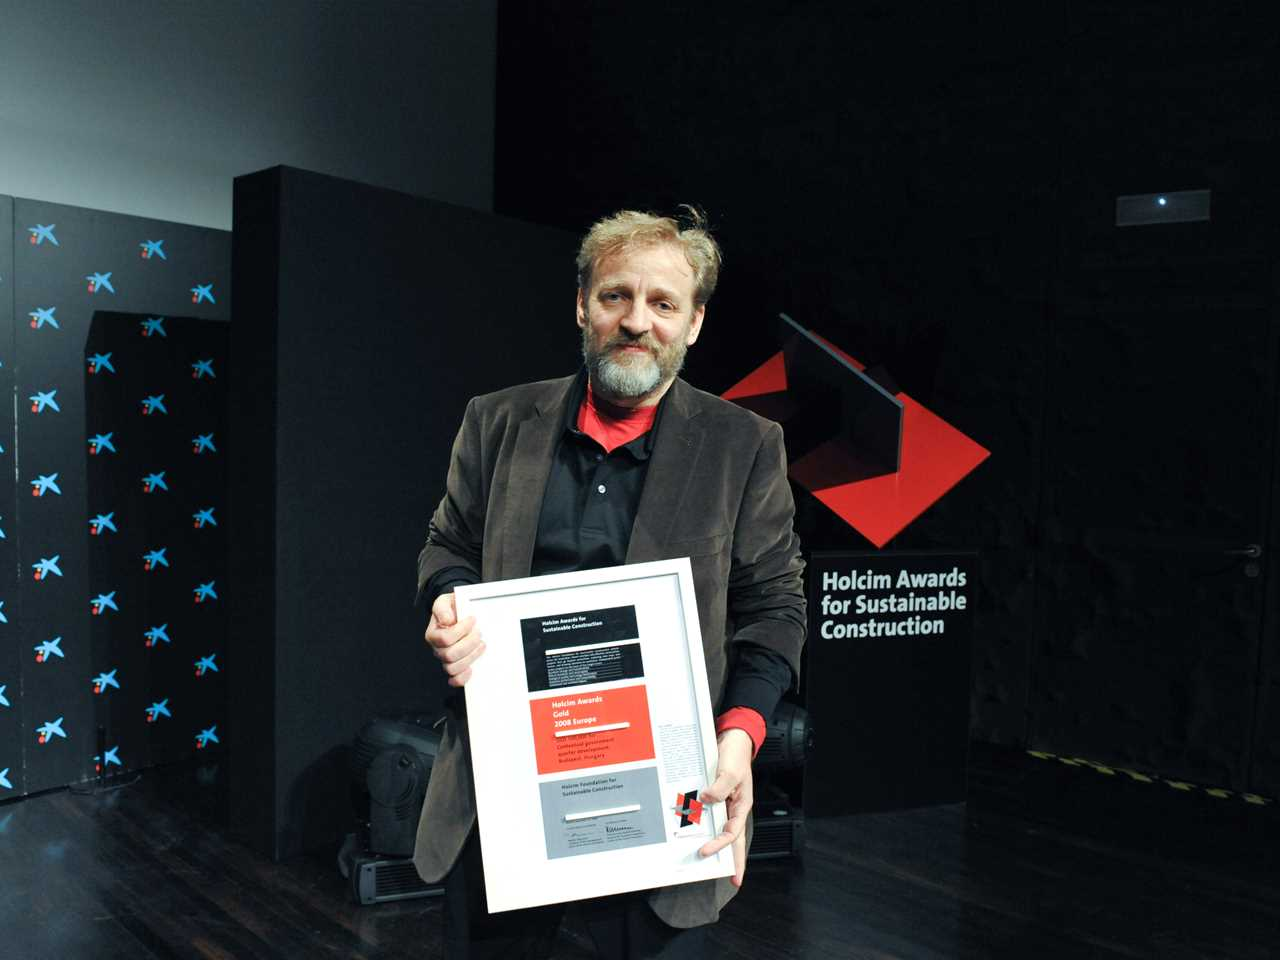 Holcim Awards Gold 2008 Europe winner Peter Janesch at the Awards ceremony in Madrid.